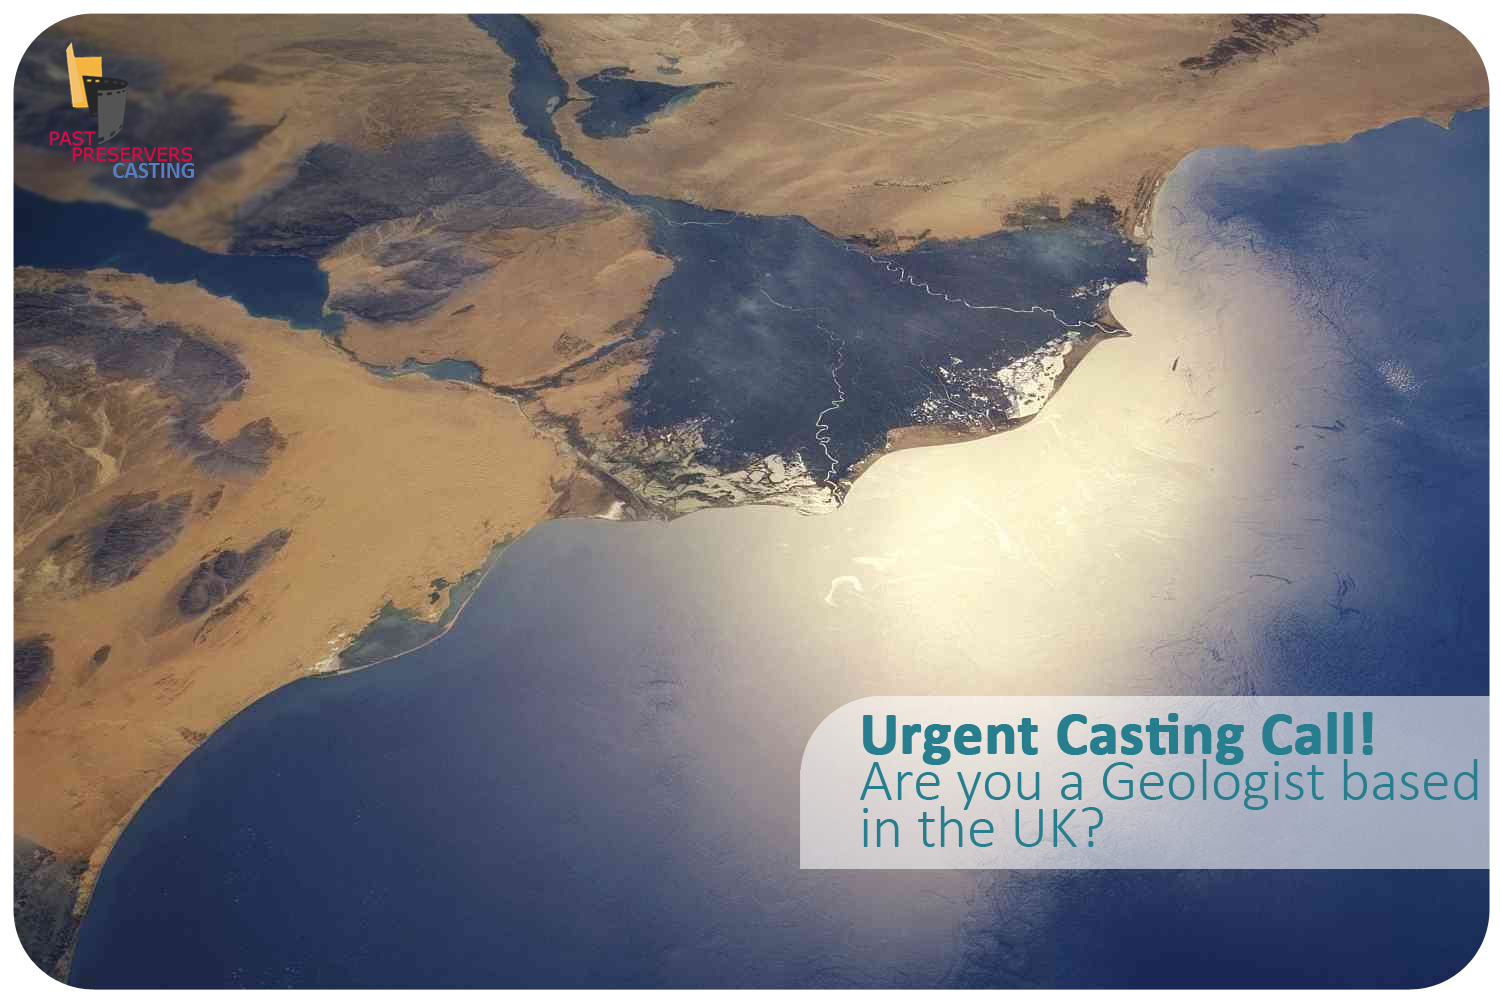 Urgent casting call for a Geologist!